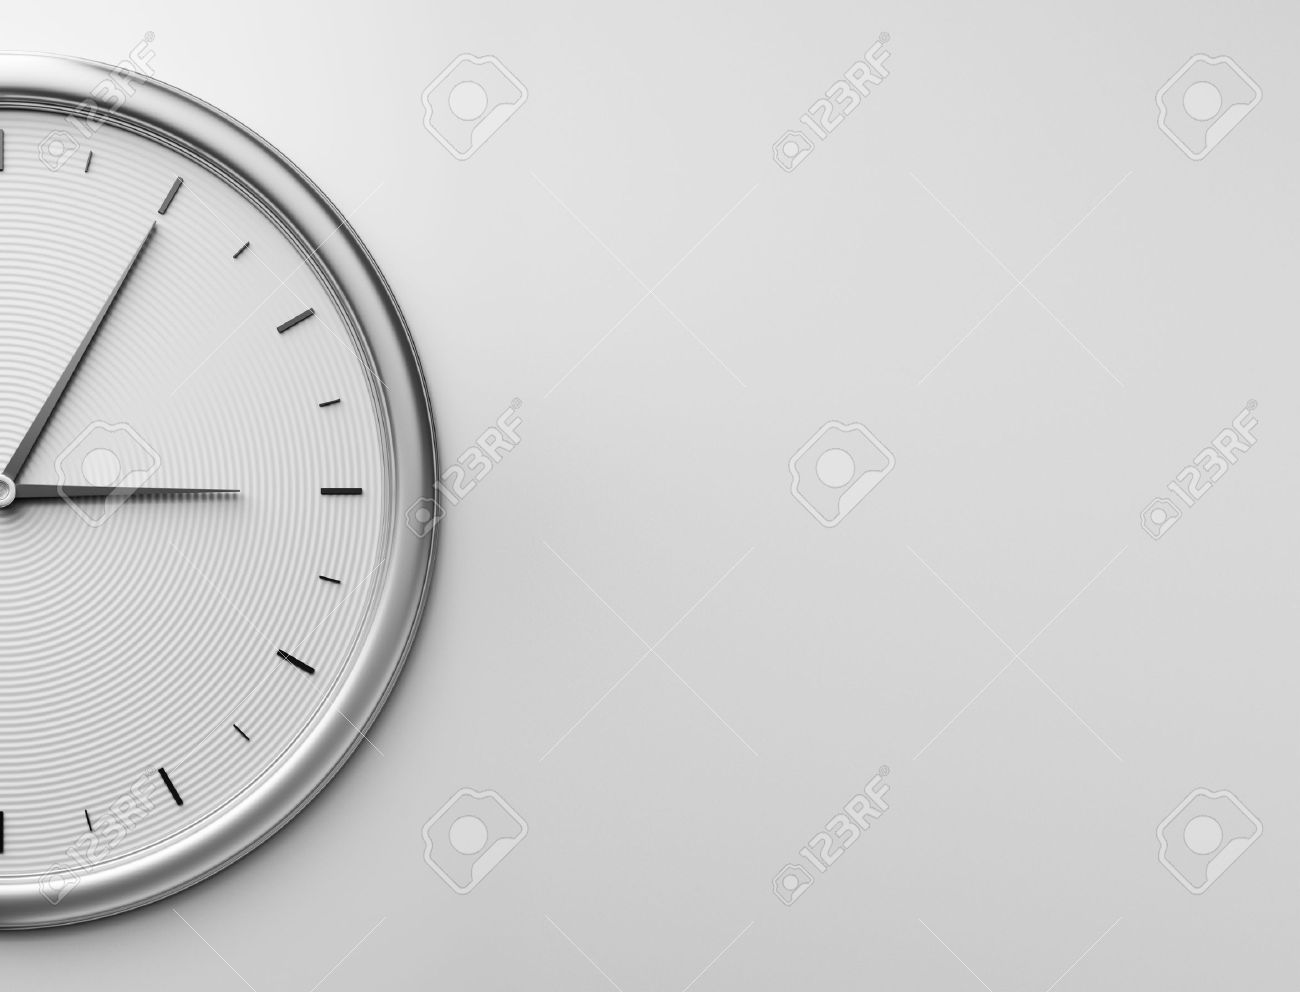 Wall Clock Stock Photos Royalty Free Images Circuit Board Design Square Of Metal 3d Rendering